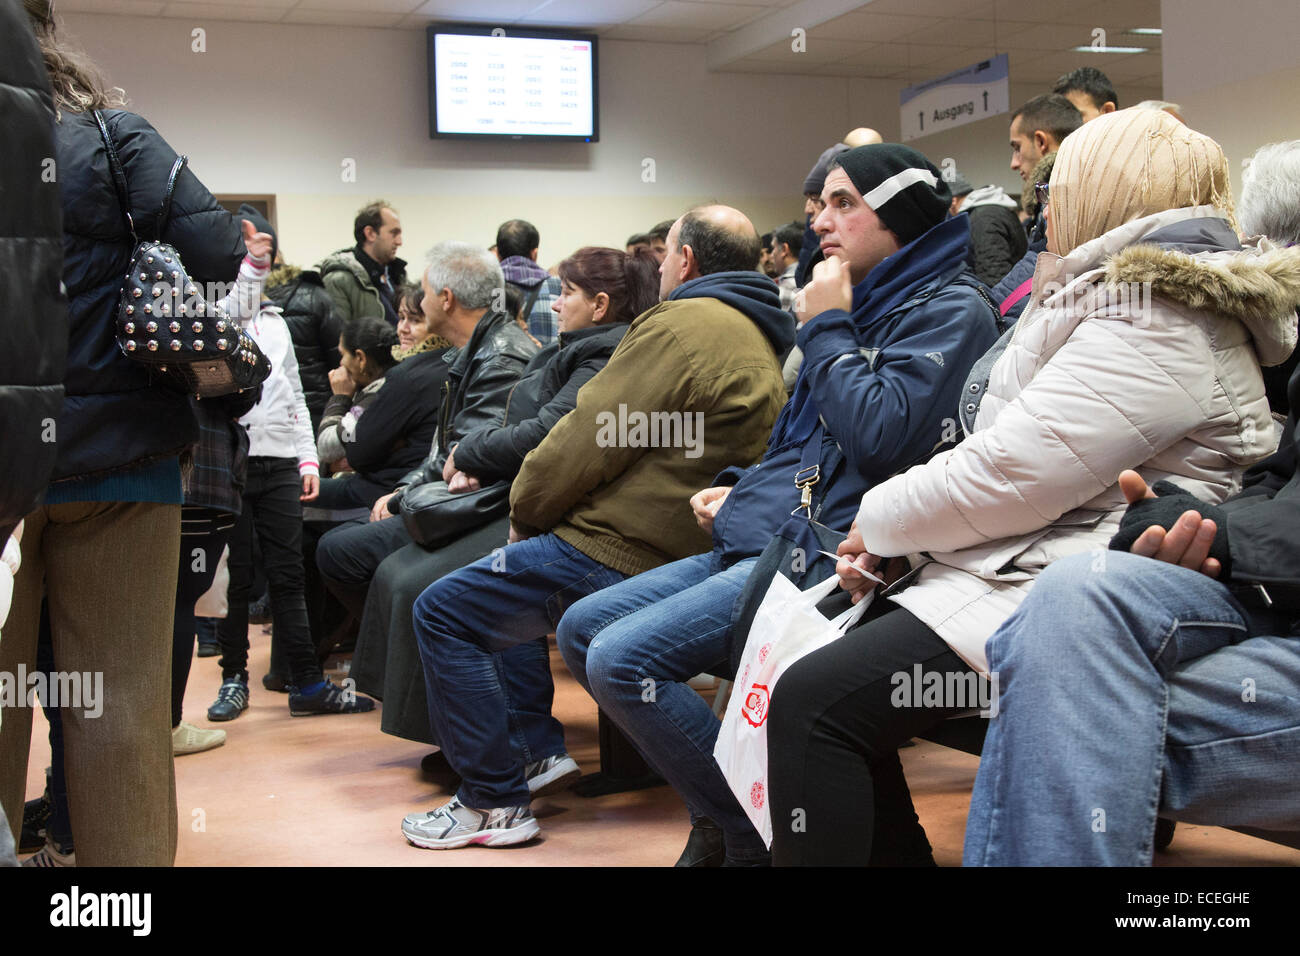 Asylum seekers wait inside the Berlin Central Reception Facility for Asylum Seekers to apply for refugee status, Stock Photo